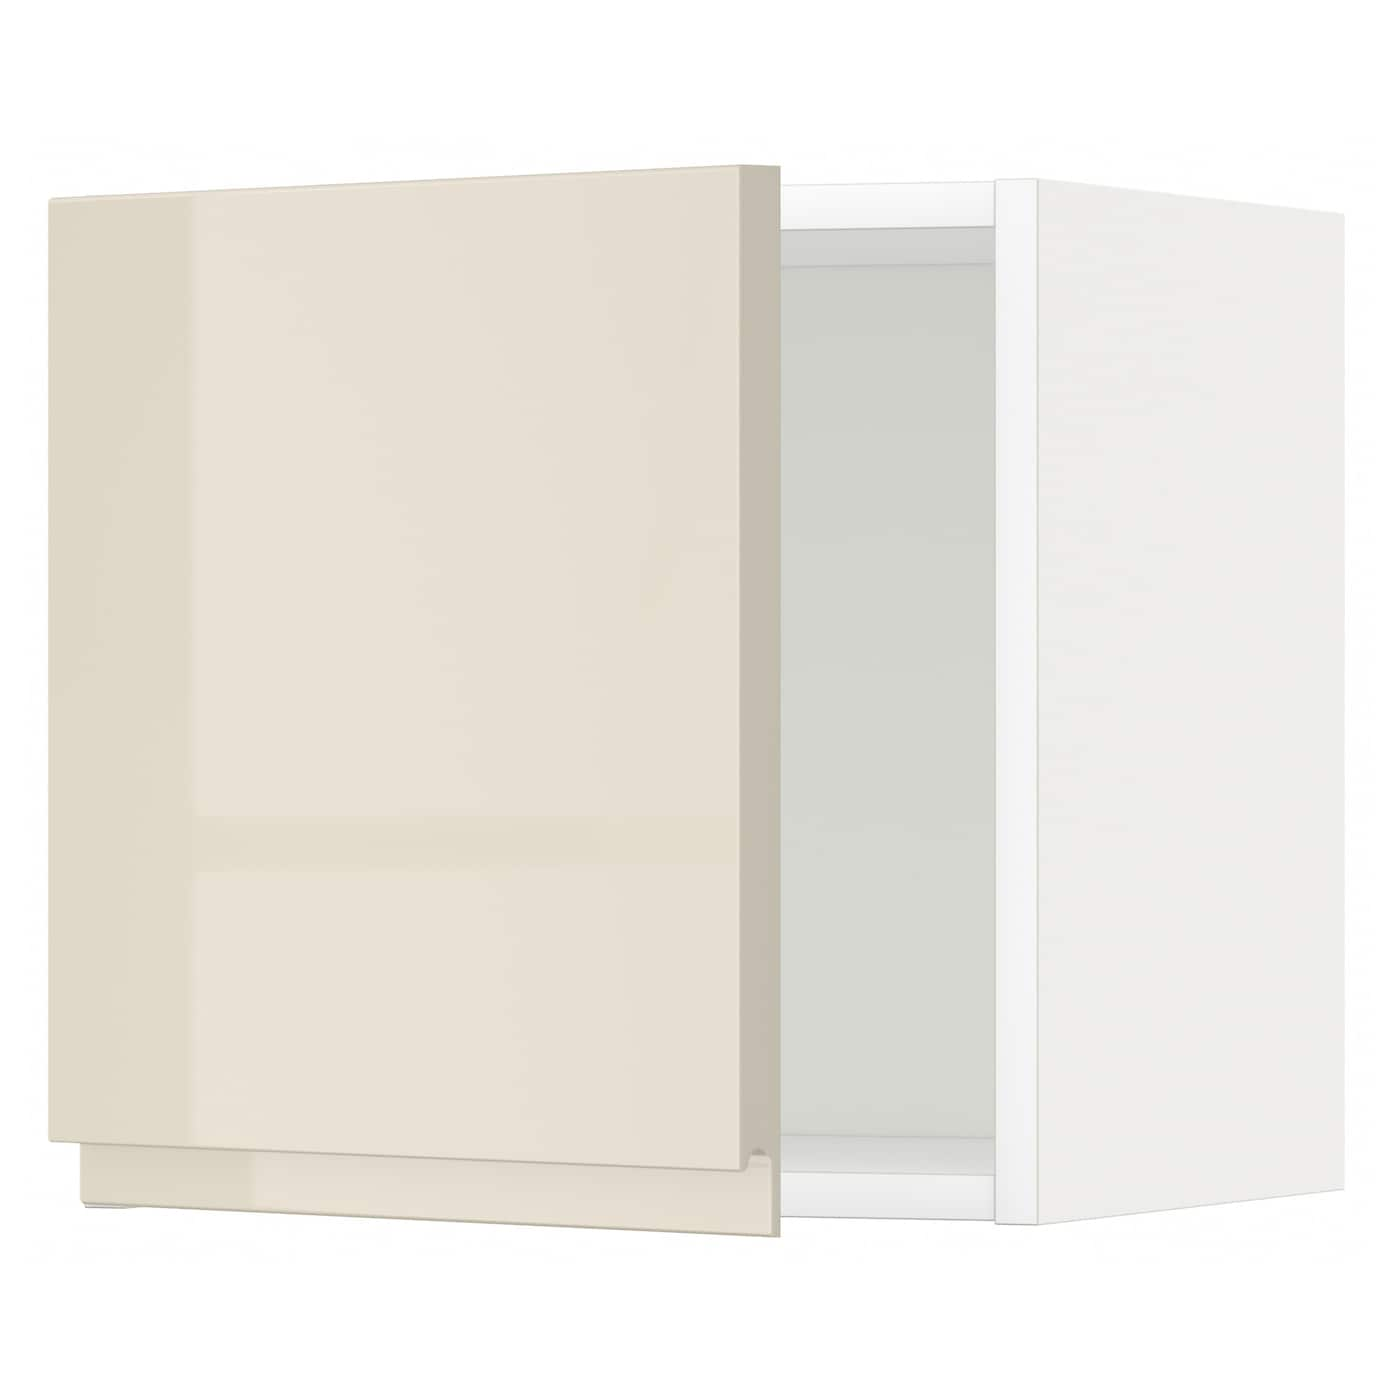 Metod wall cabinet white voxtorp high gloss light beige for Gloss white kitchen wall cabinets